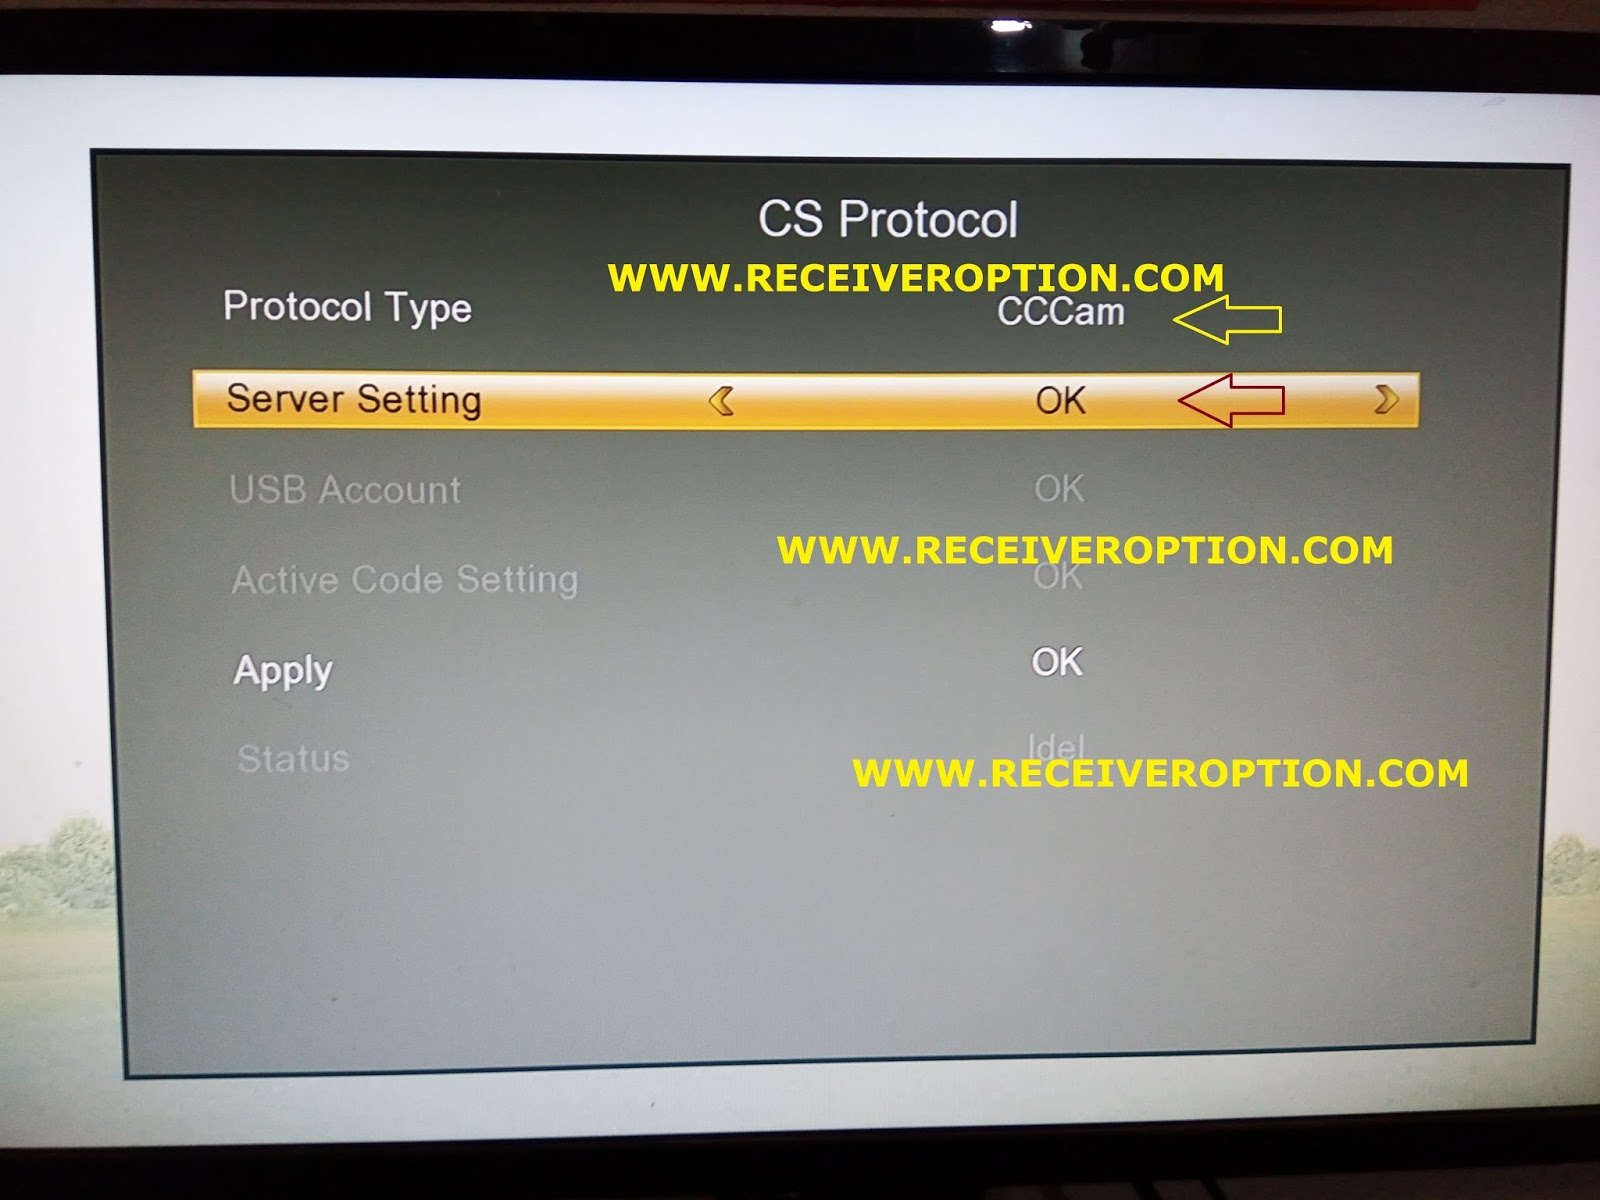 STARTRACT O2 HD RECEIVER CCCAM OPTION - HOW TO ENTER BISS